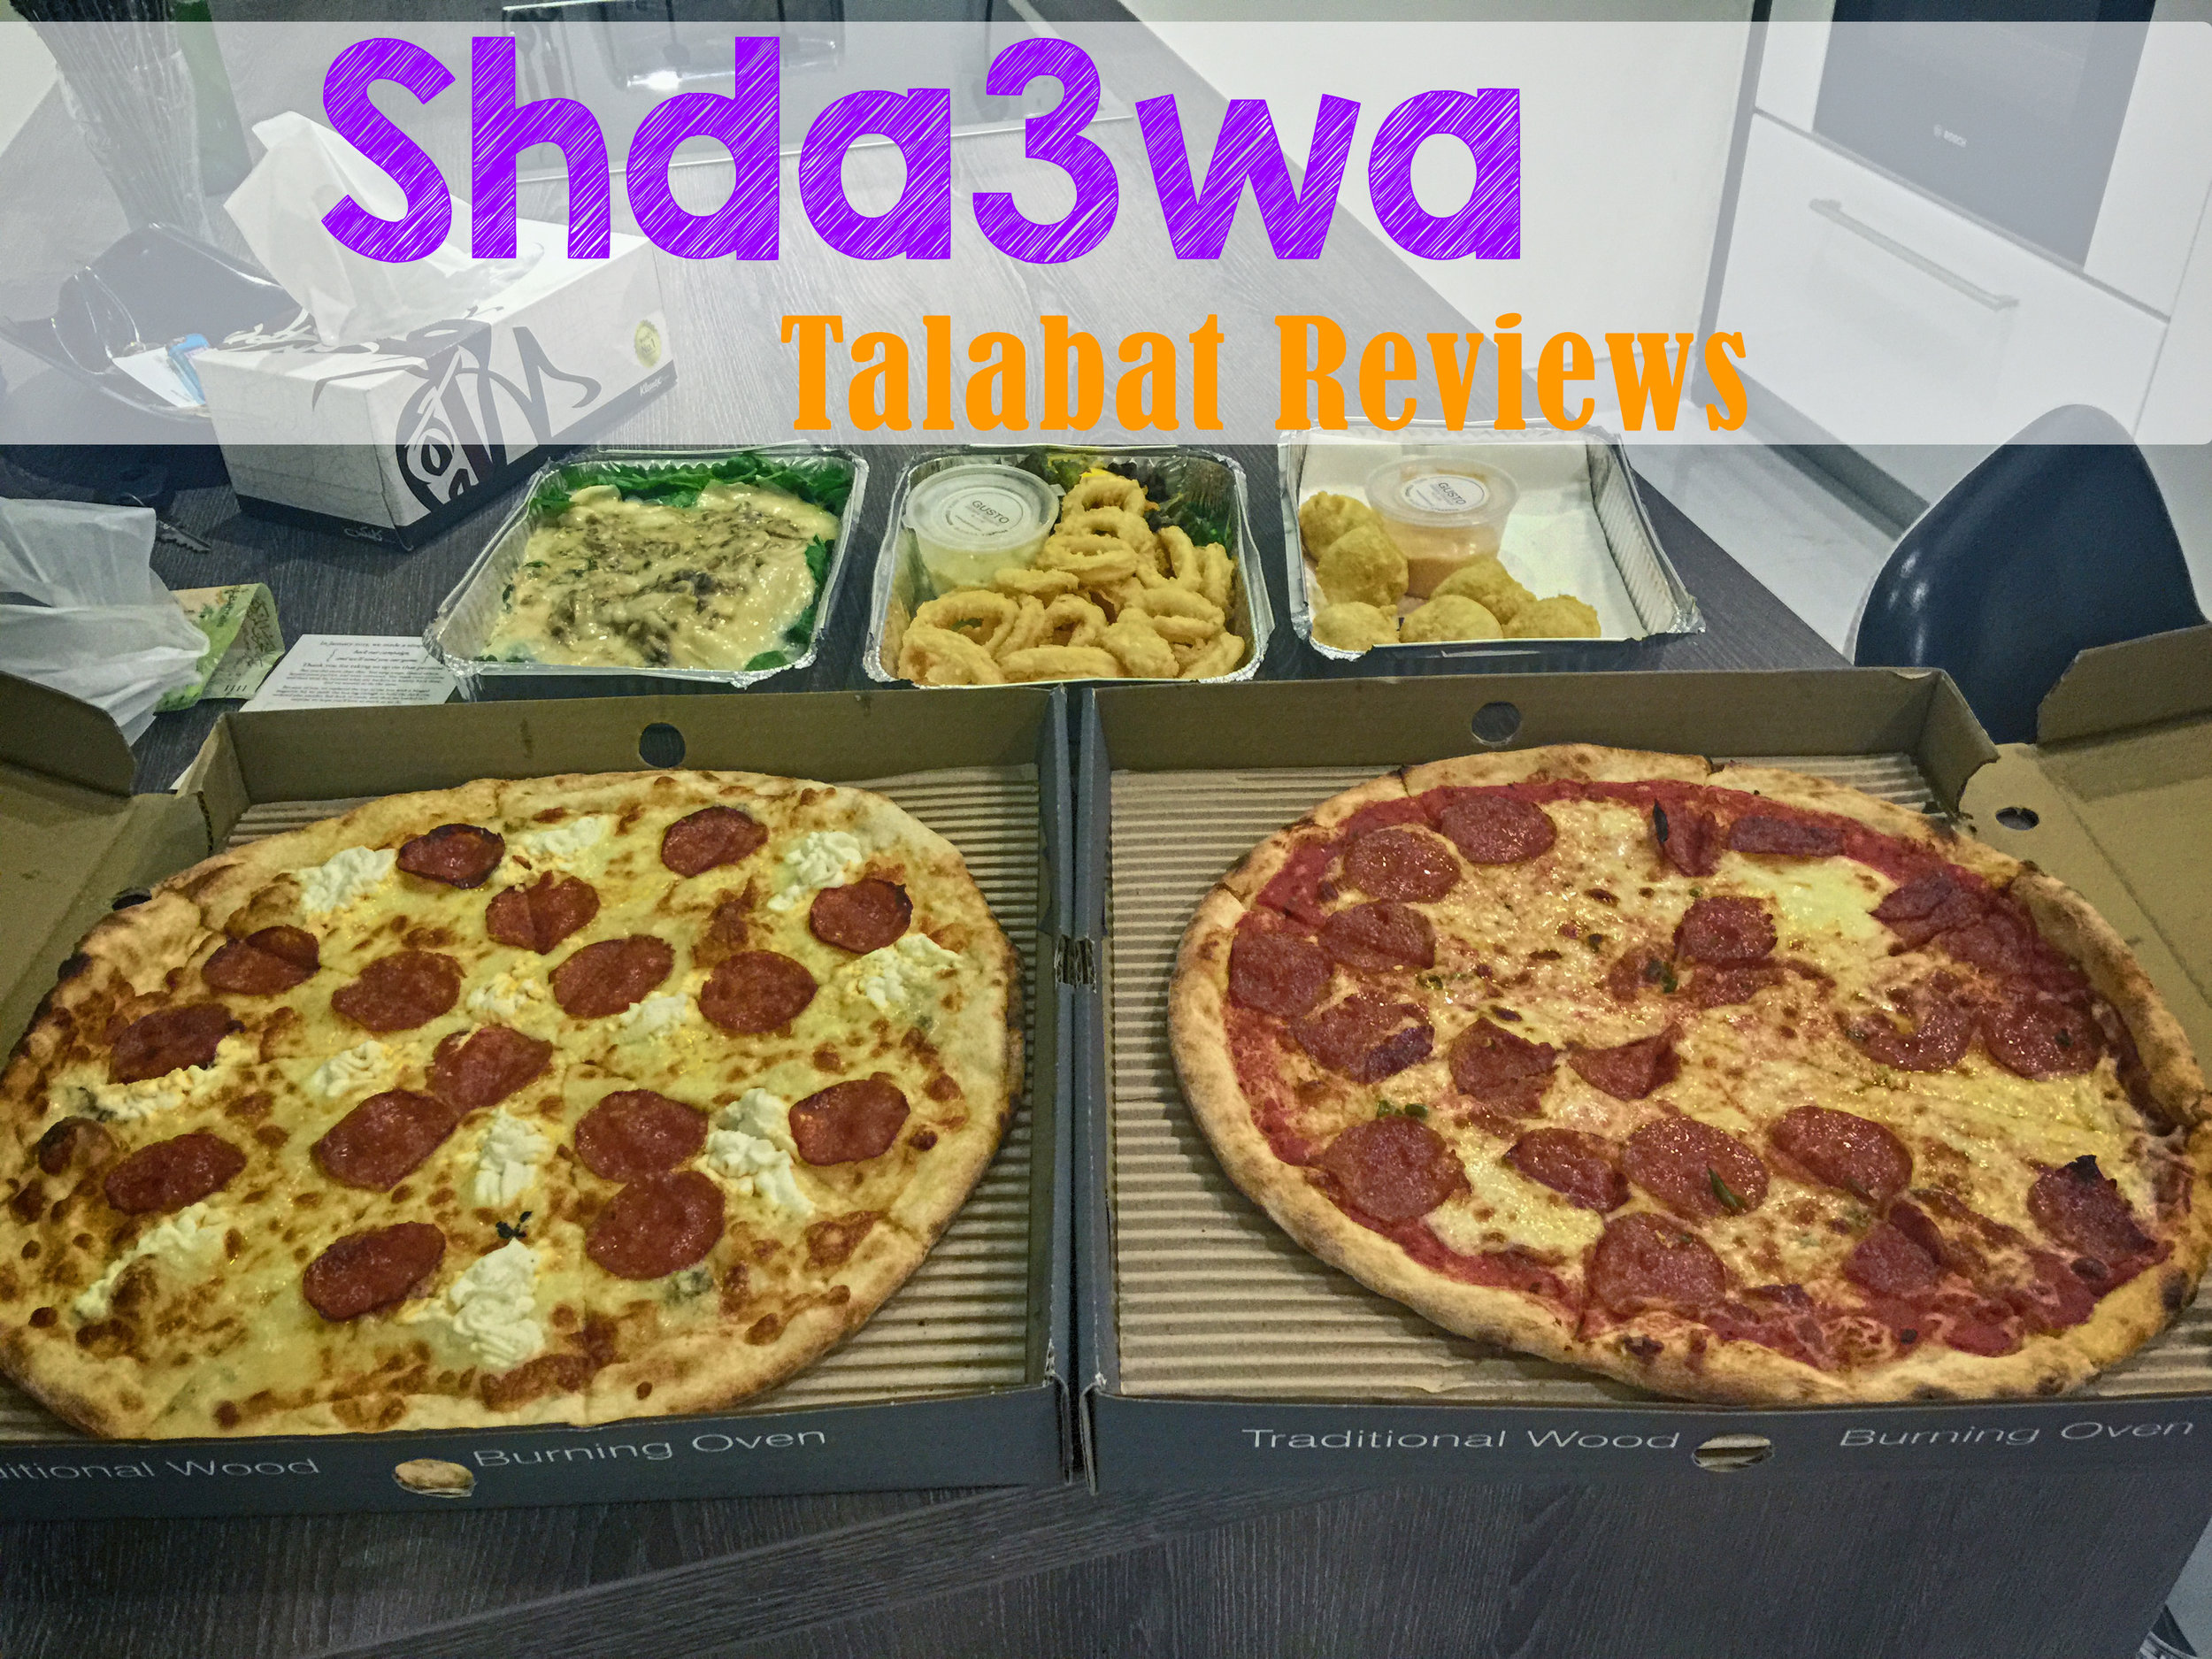 Shda3wa Talabat Reviews Featured